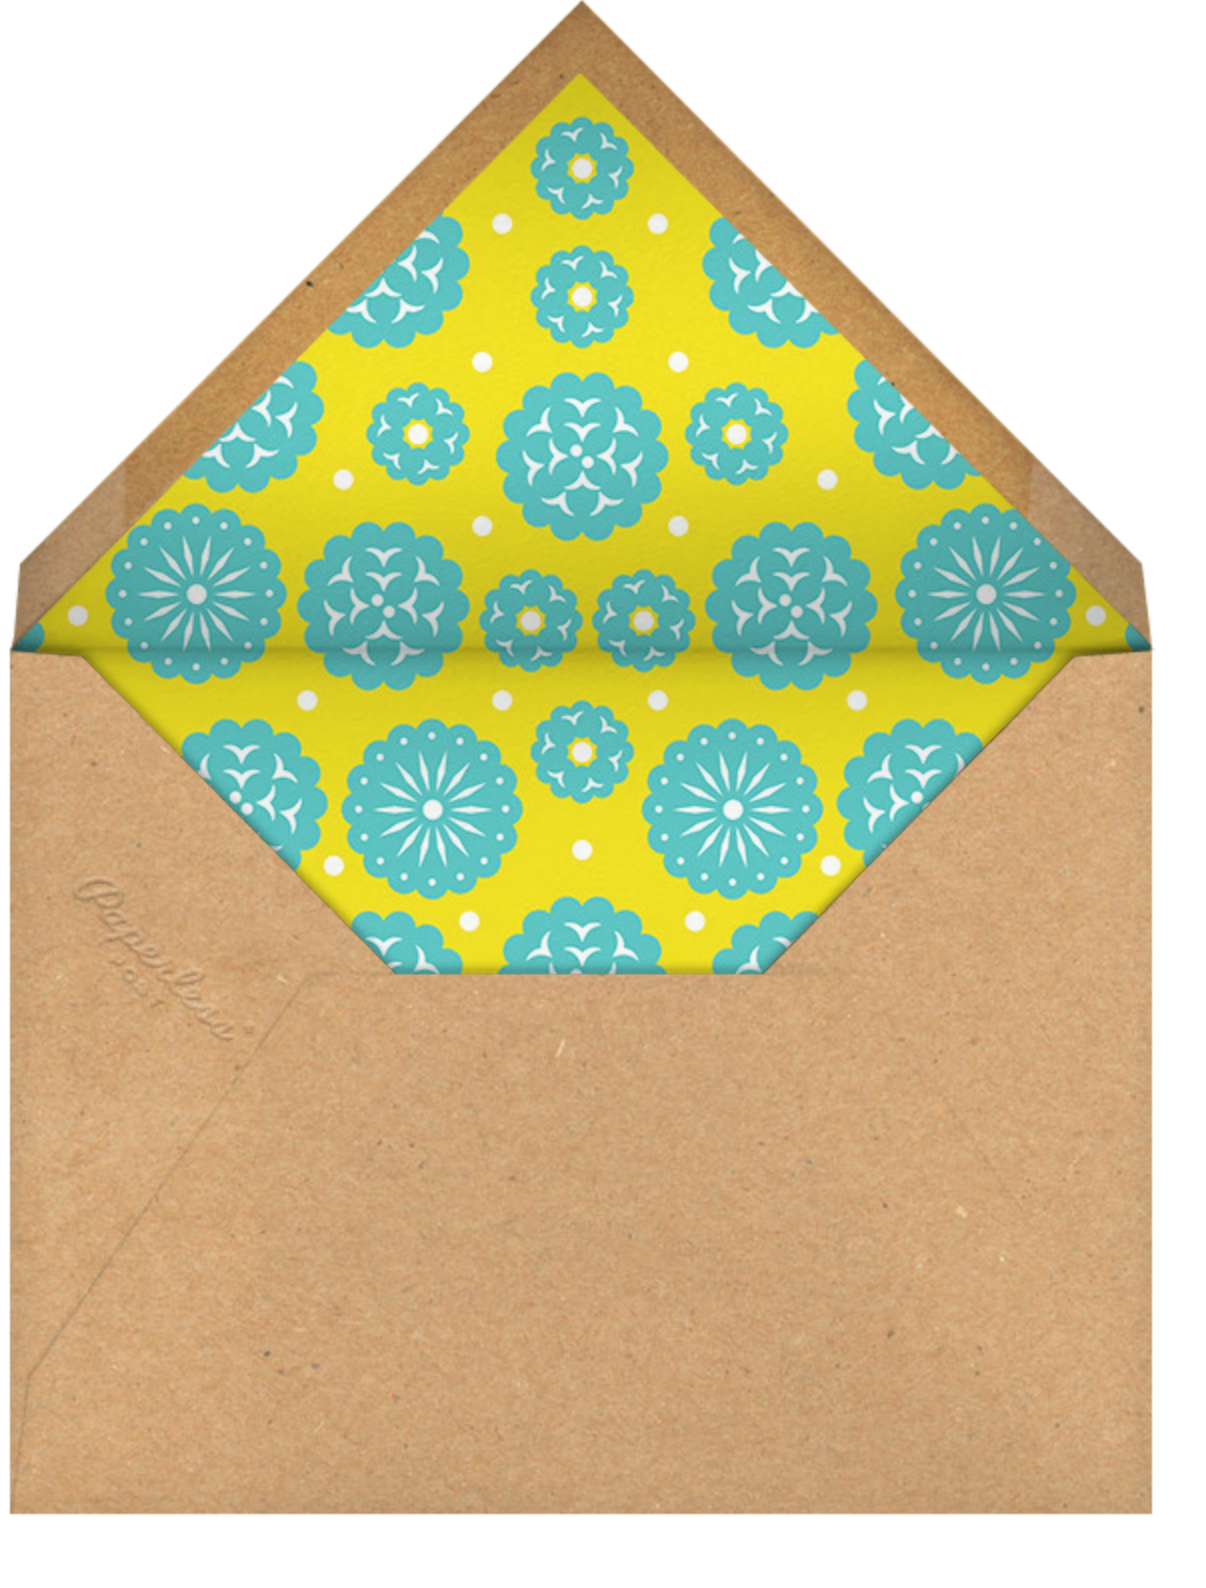 Fiesta Banner - Paperless Post - Adult birthday - envelope back